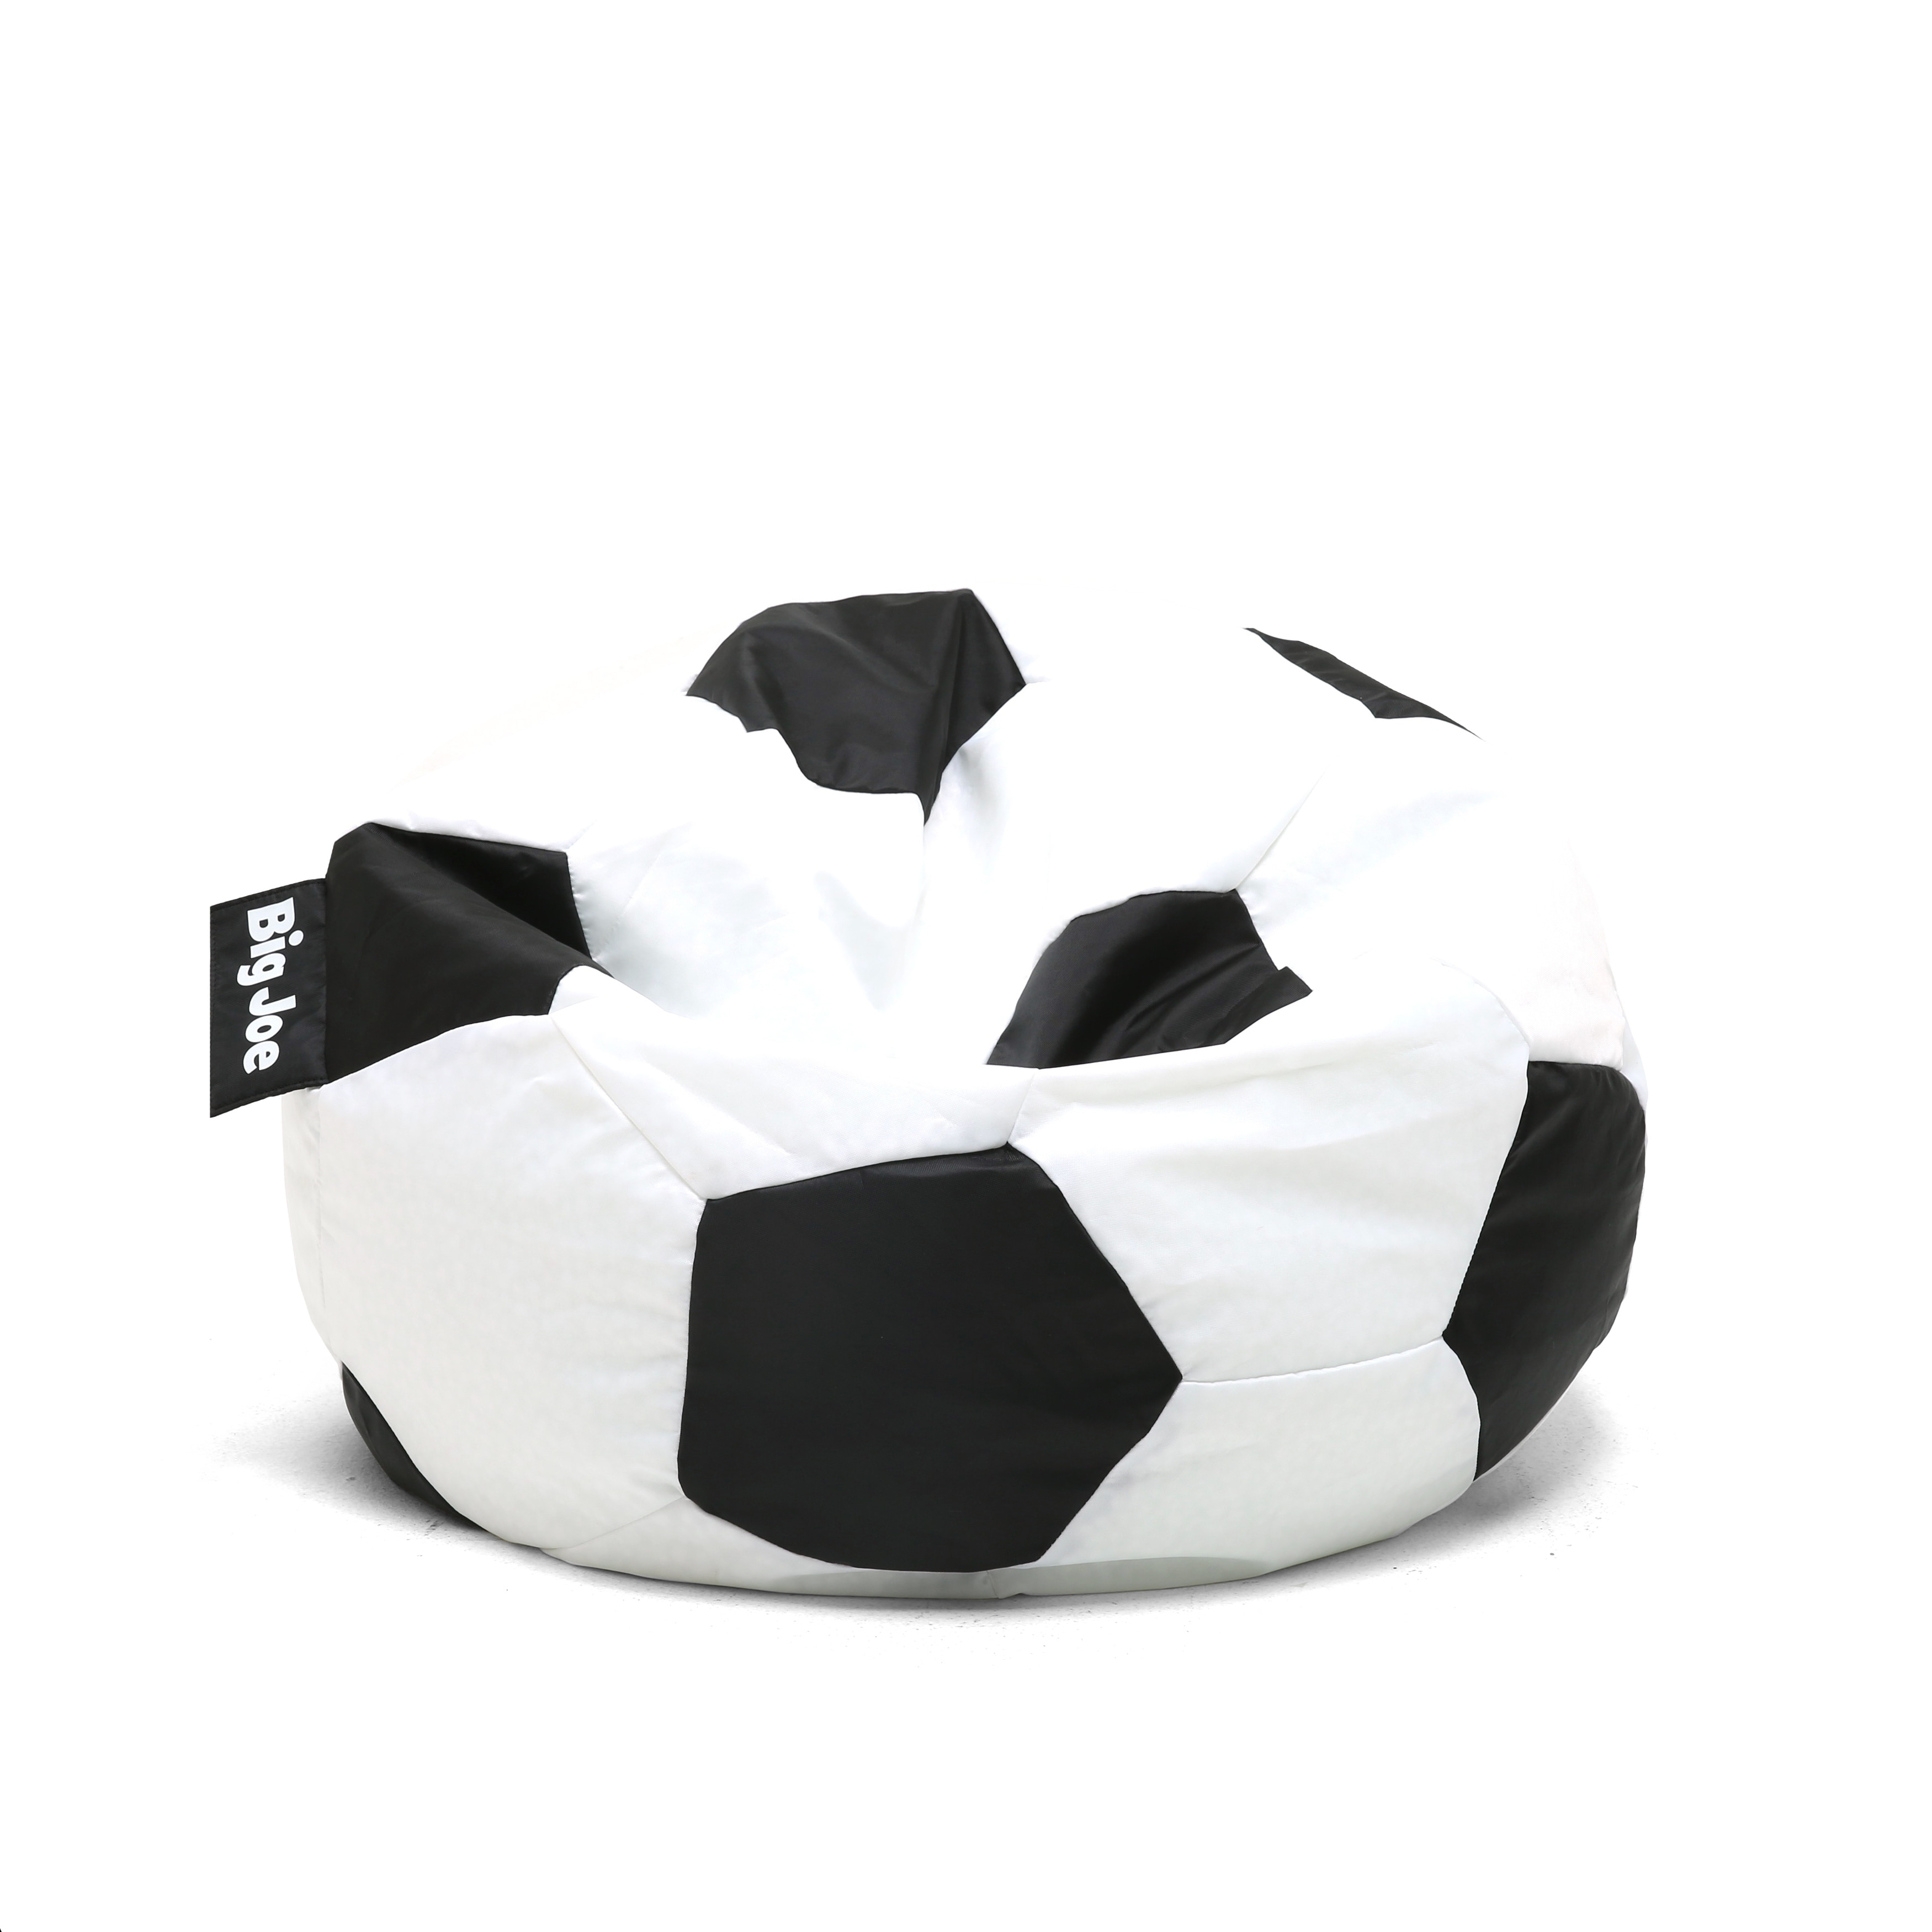 Basketball Bean Bag Chair Details About Big Joe Soccer Ball Bean Bag Chair